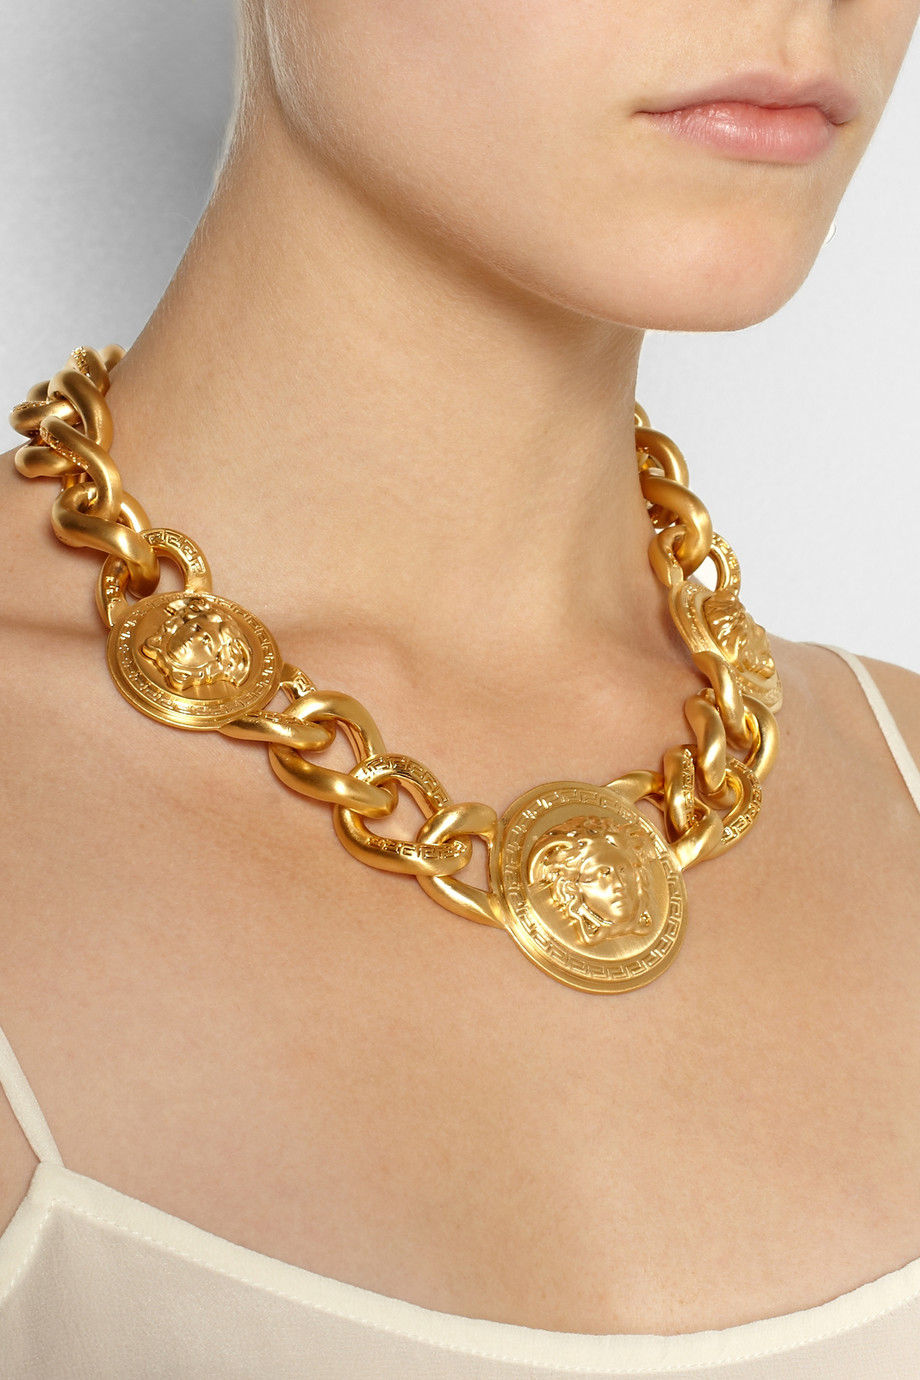 Versace Iconic 3 Medusa medallions chain necklace_6